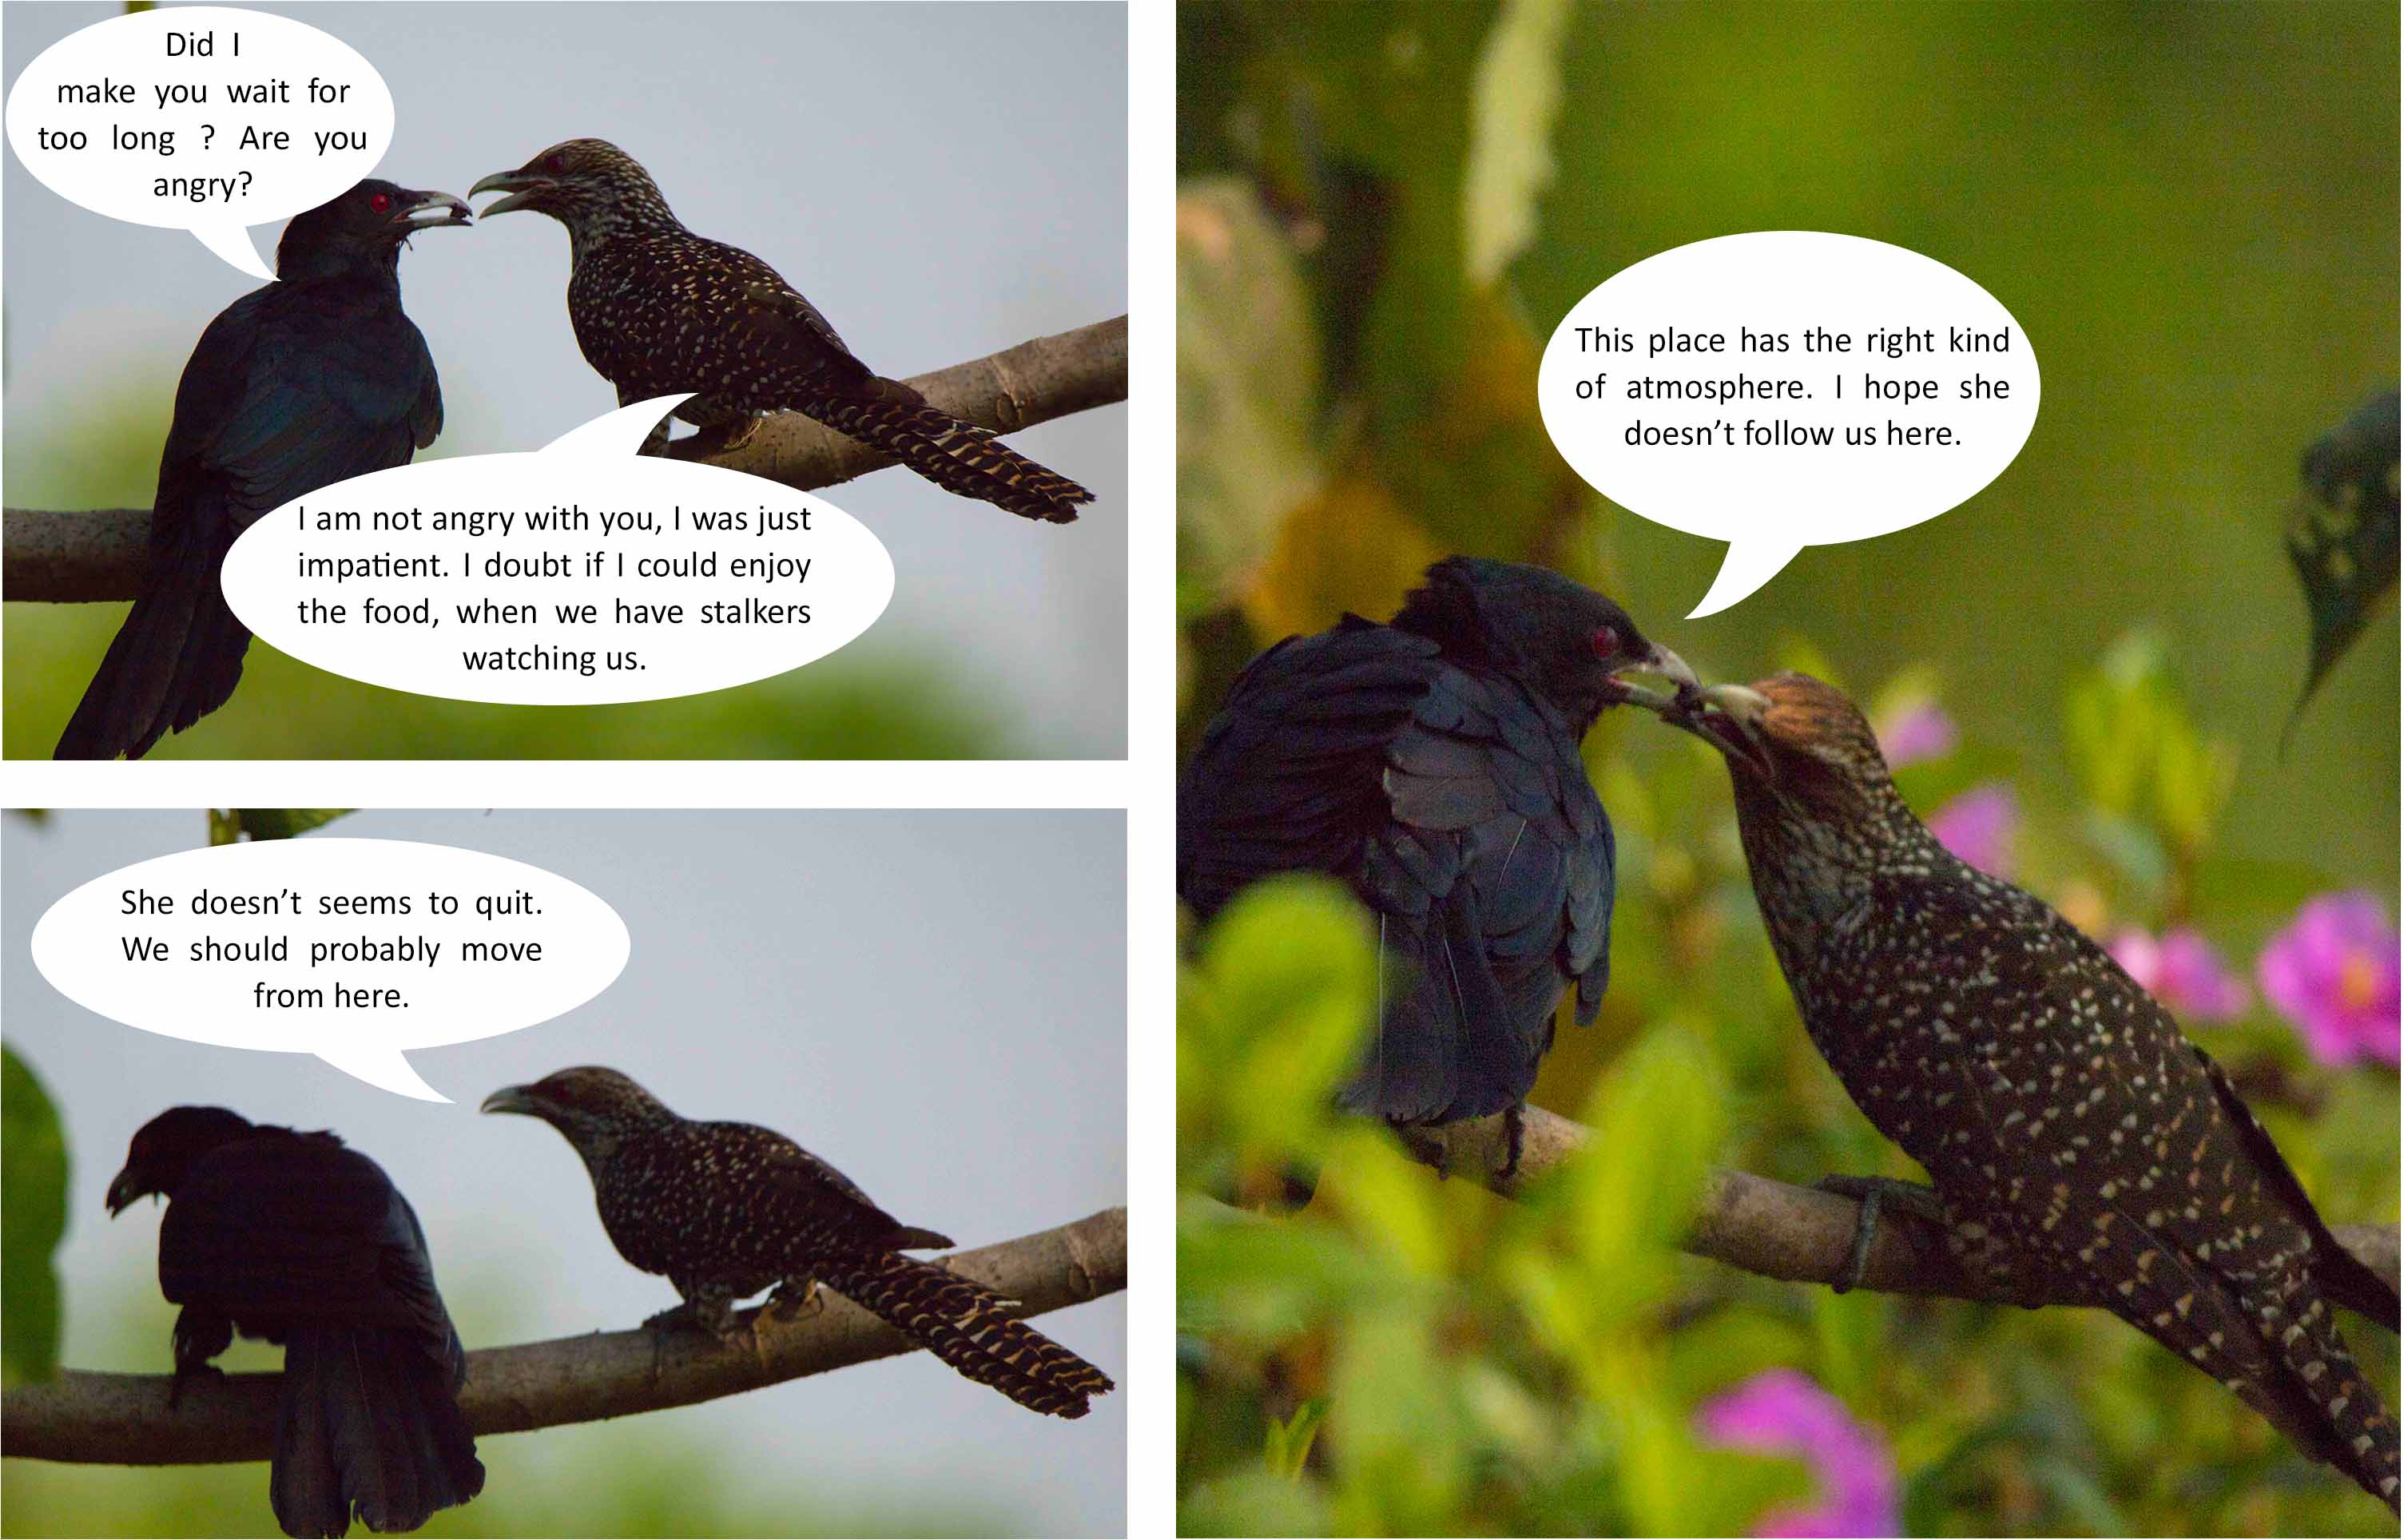 birds-images-photomentor